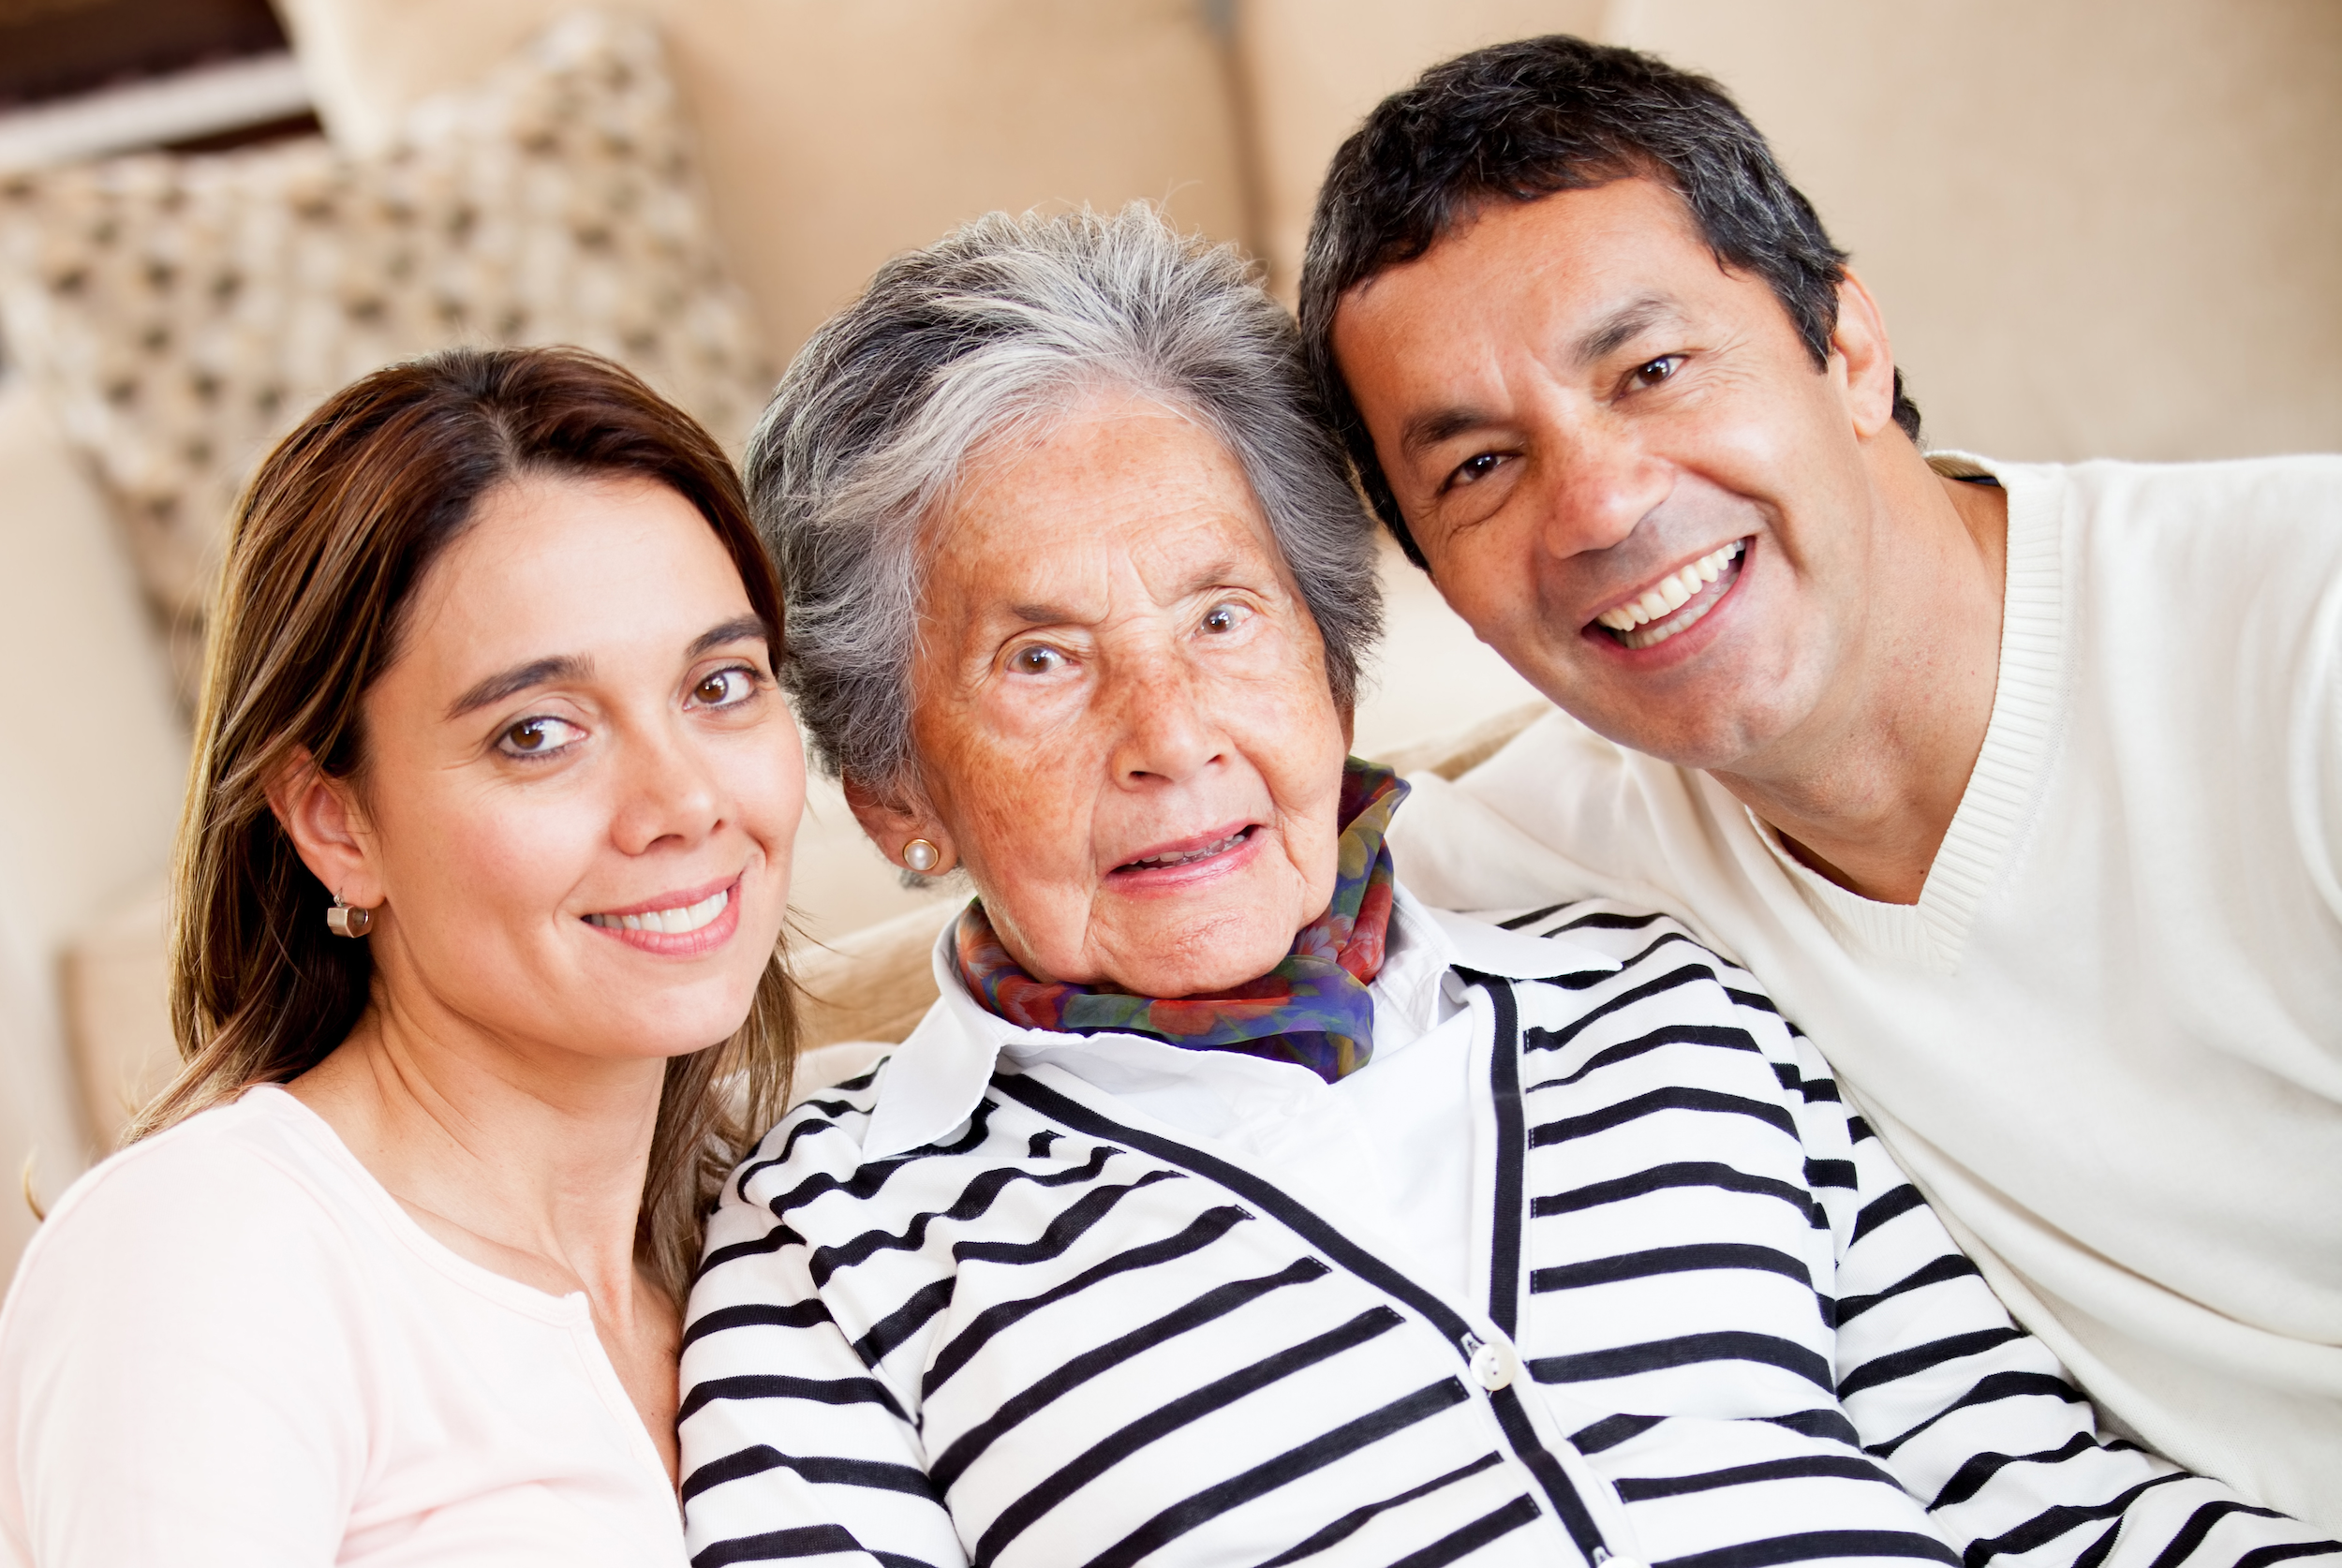 If you have a family member you can't care for, we can help keep you informed and give you peace of mind.